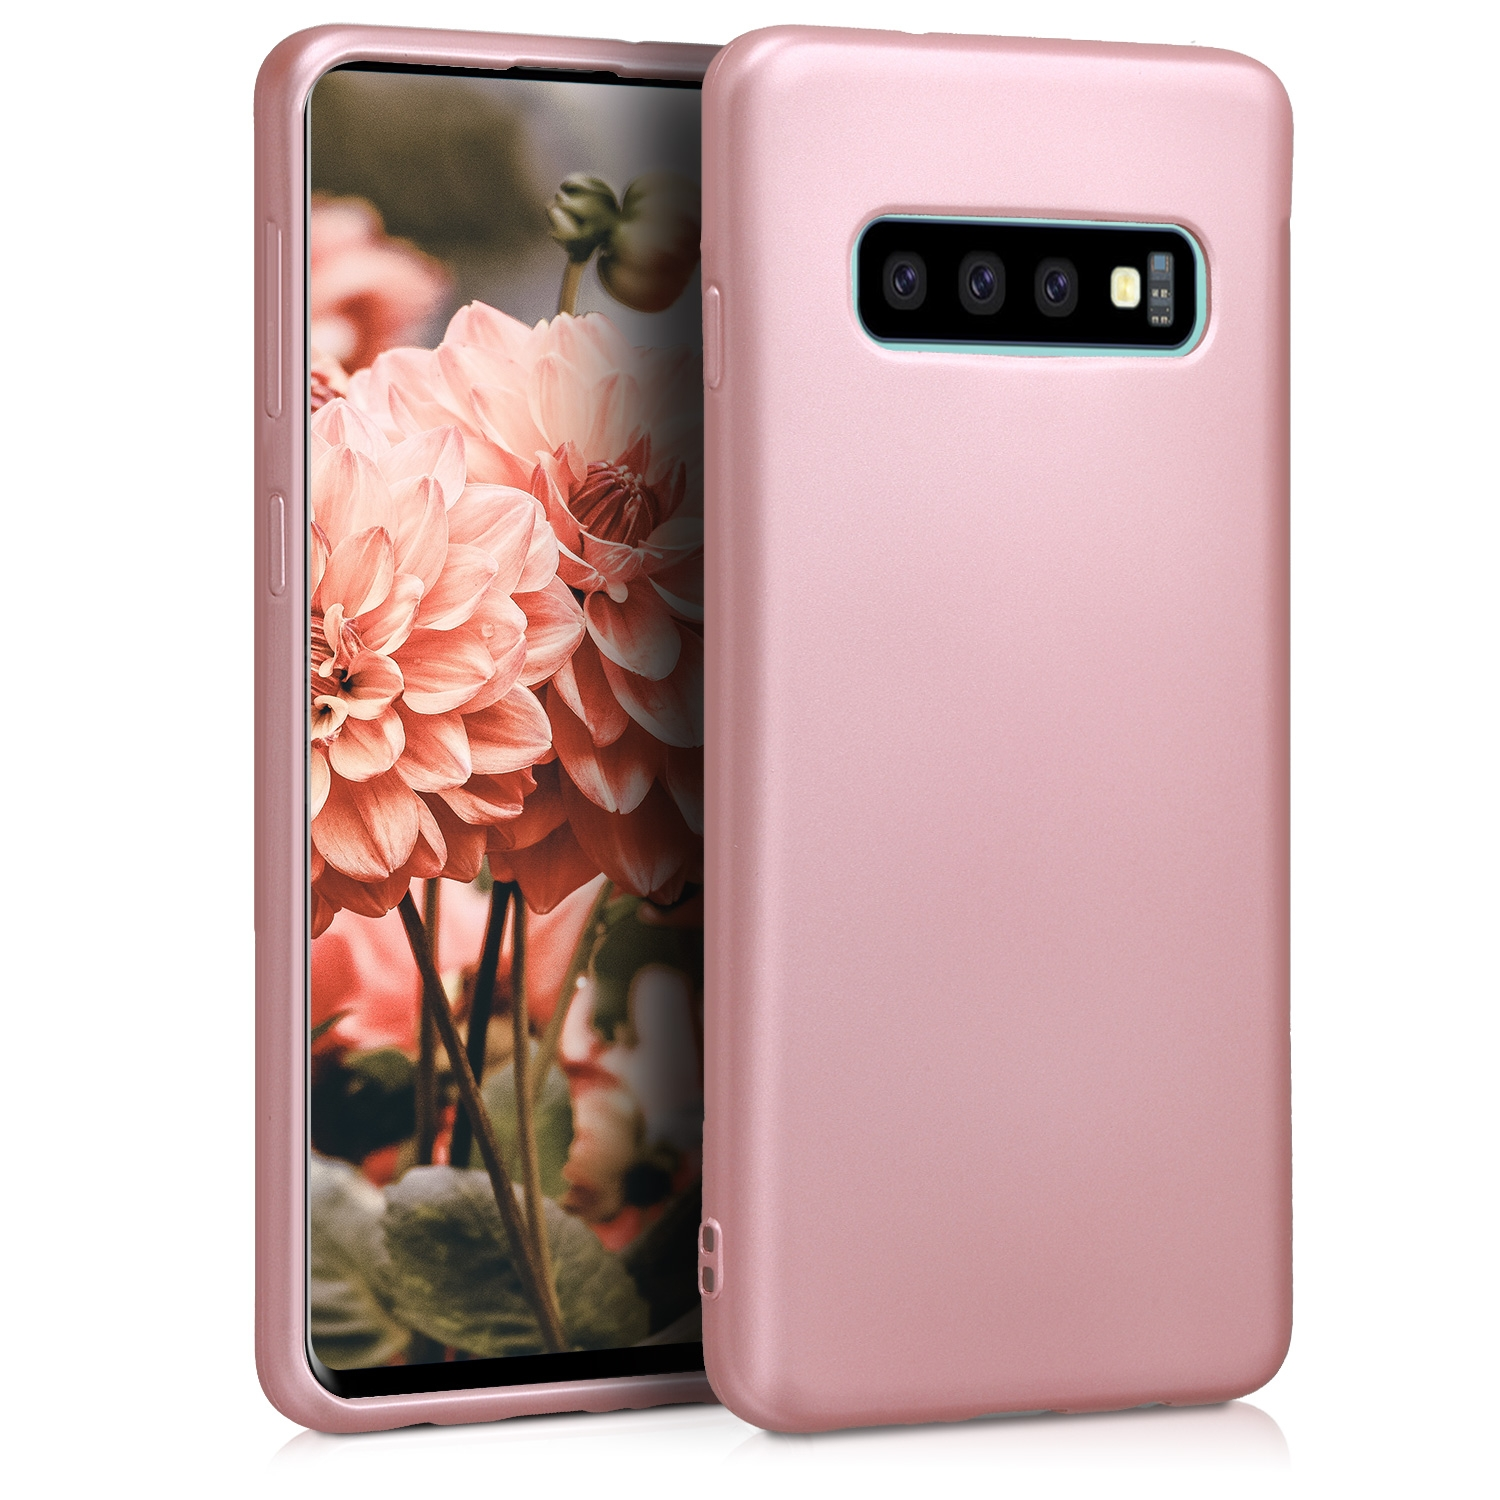 KW Θήκη Σιλικόνης Samsung Galaxy S10 - Metallic Rose Gold (47452.31)